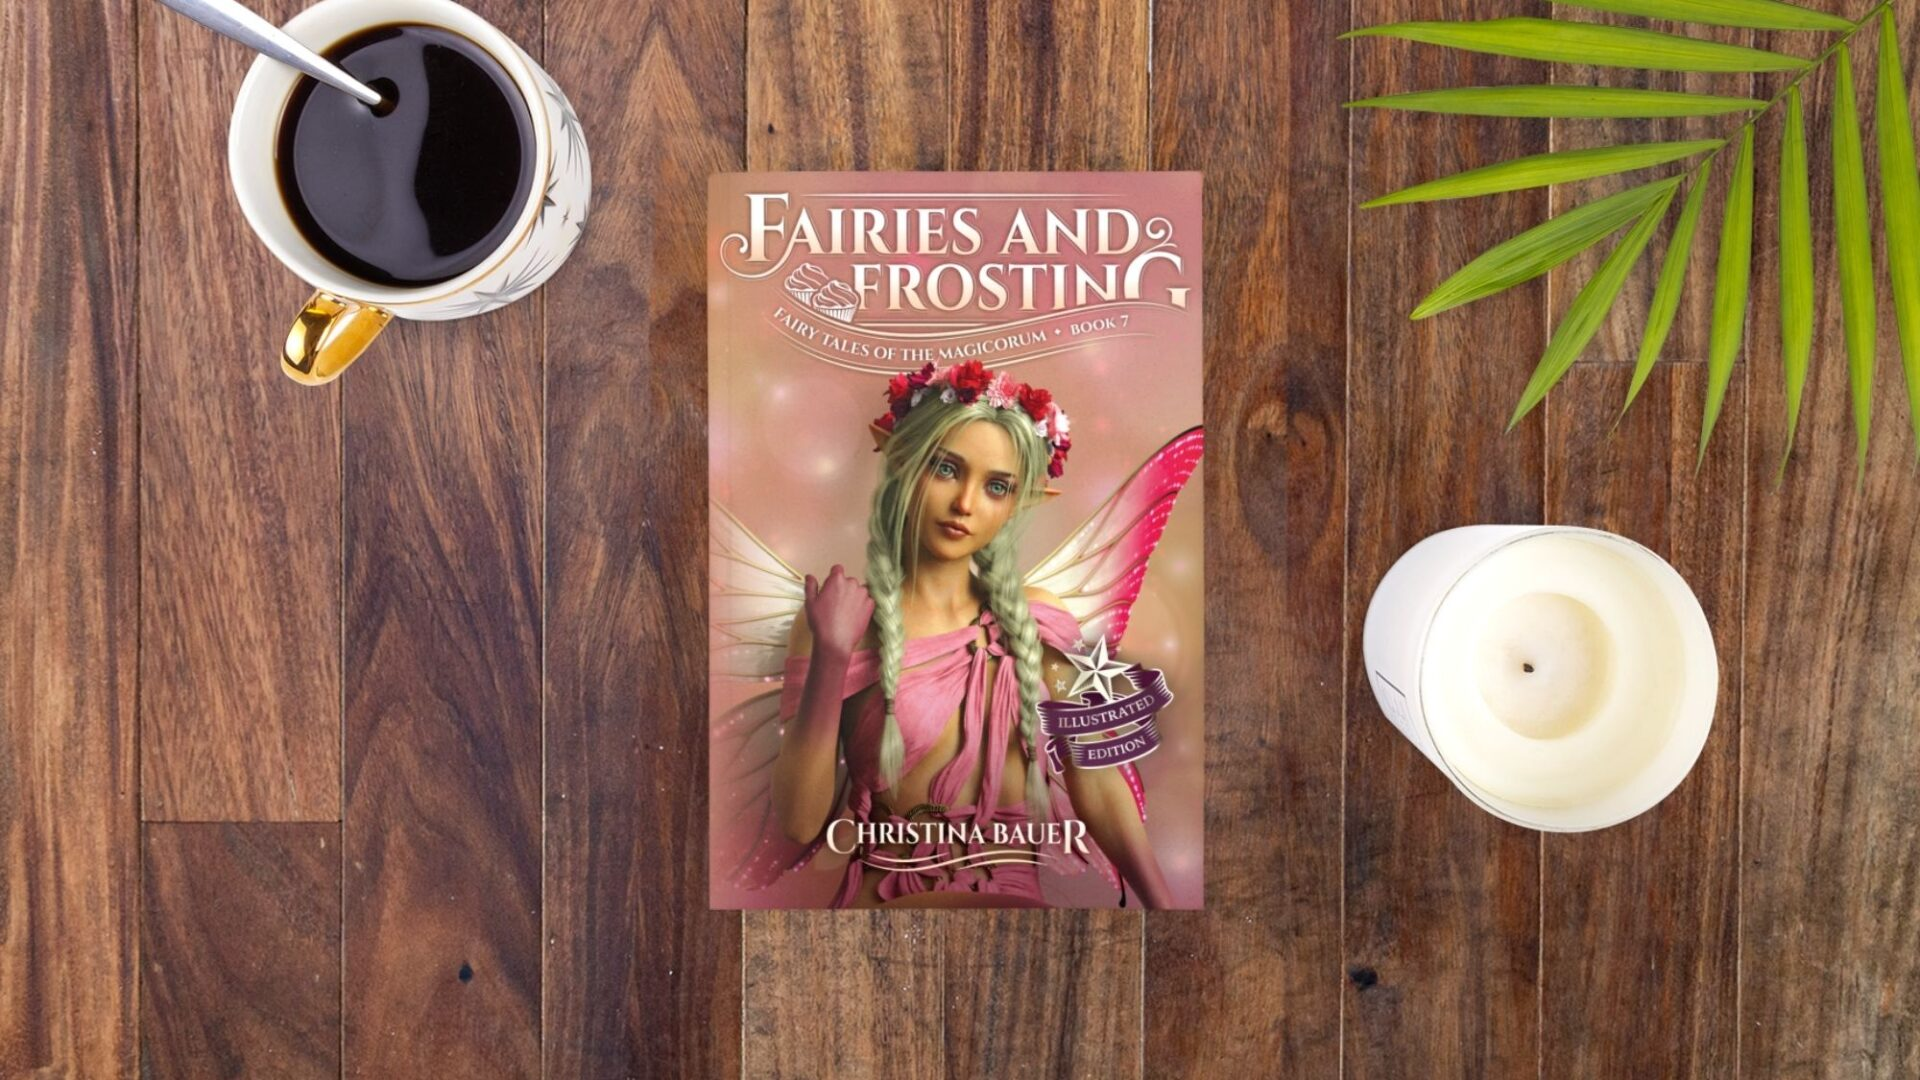 New Edition: FAIRIES & FROSTING